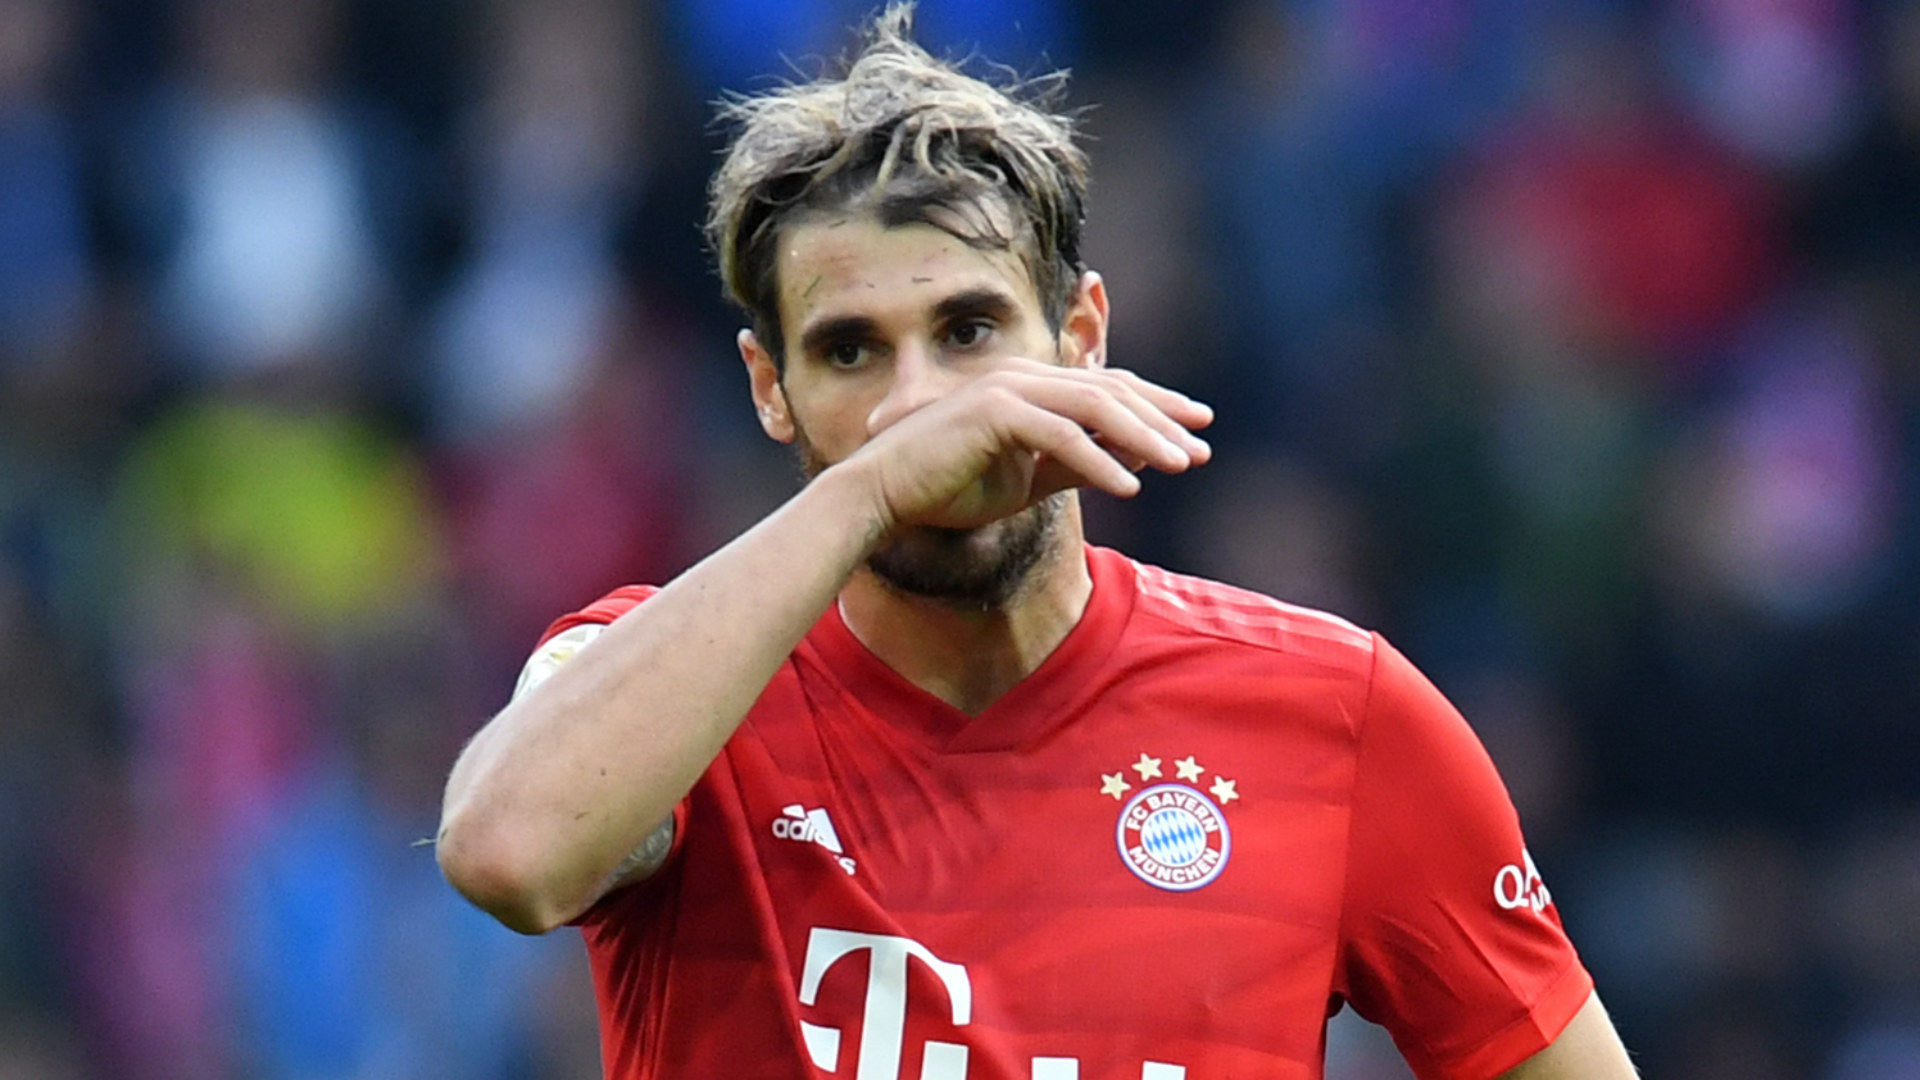 MLS, Australia & Spain options for Javi Martinez after Bayern contract runs out